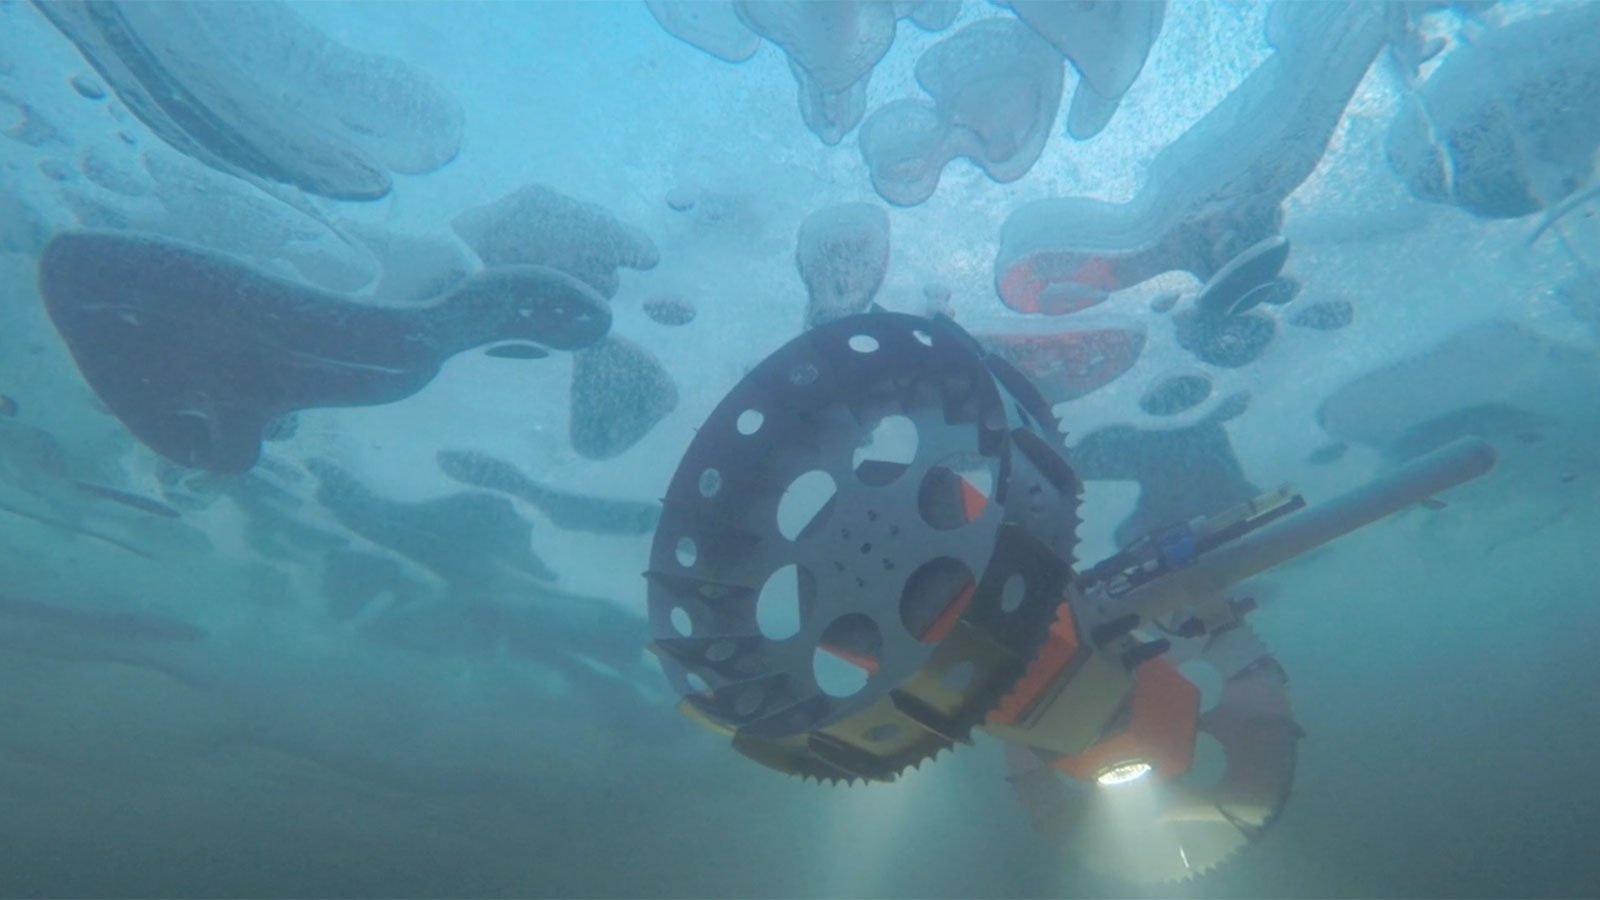 This underwater rover could explore ocean worlds in our solar system